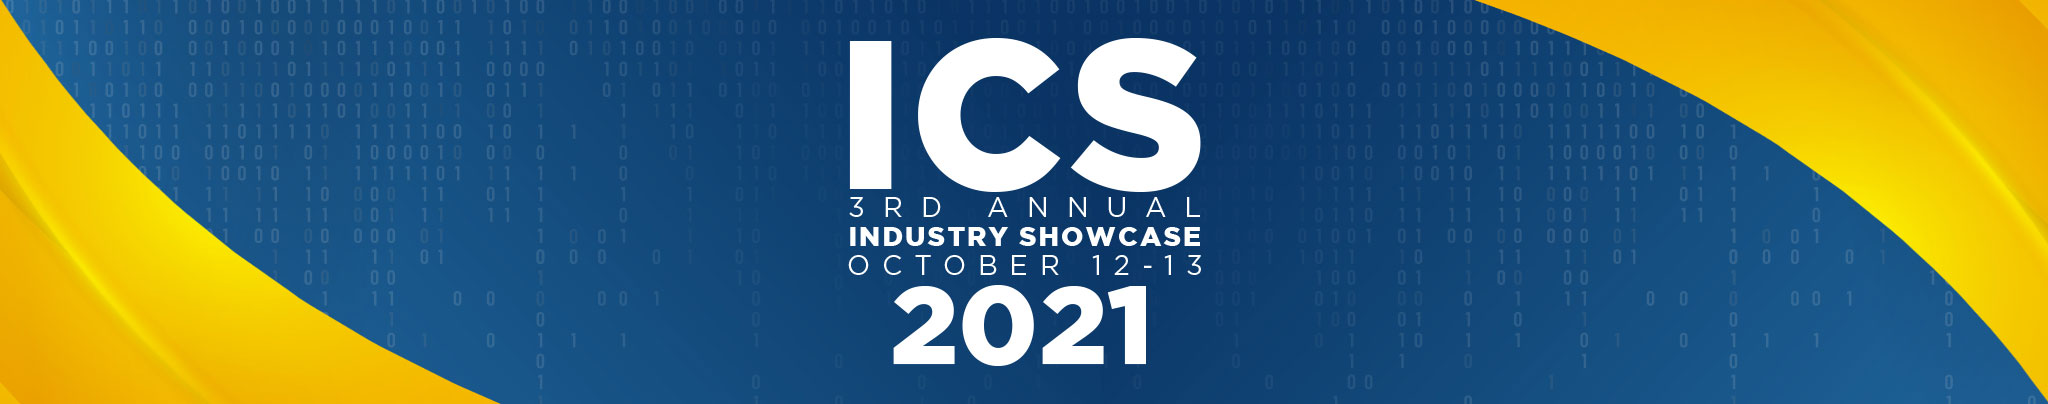 3rd Annual ICS Industry Showcase - October 12 & 13, 2021